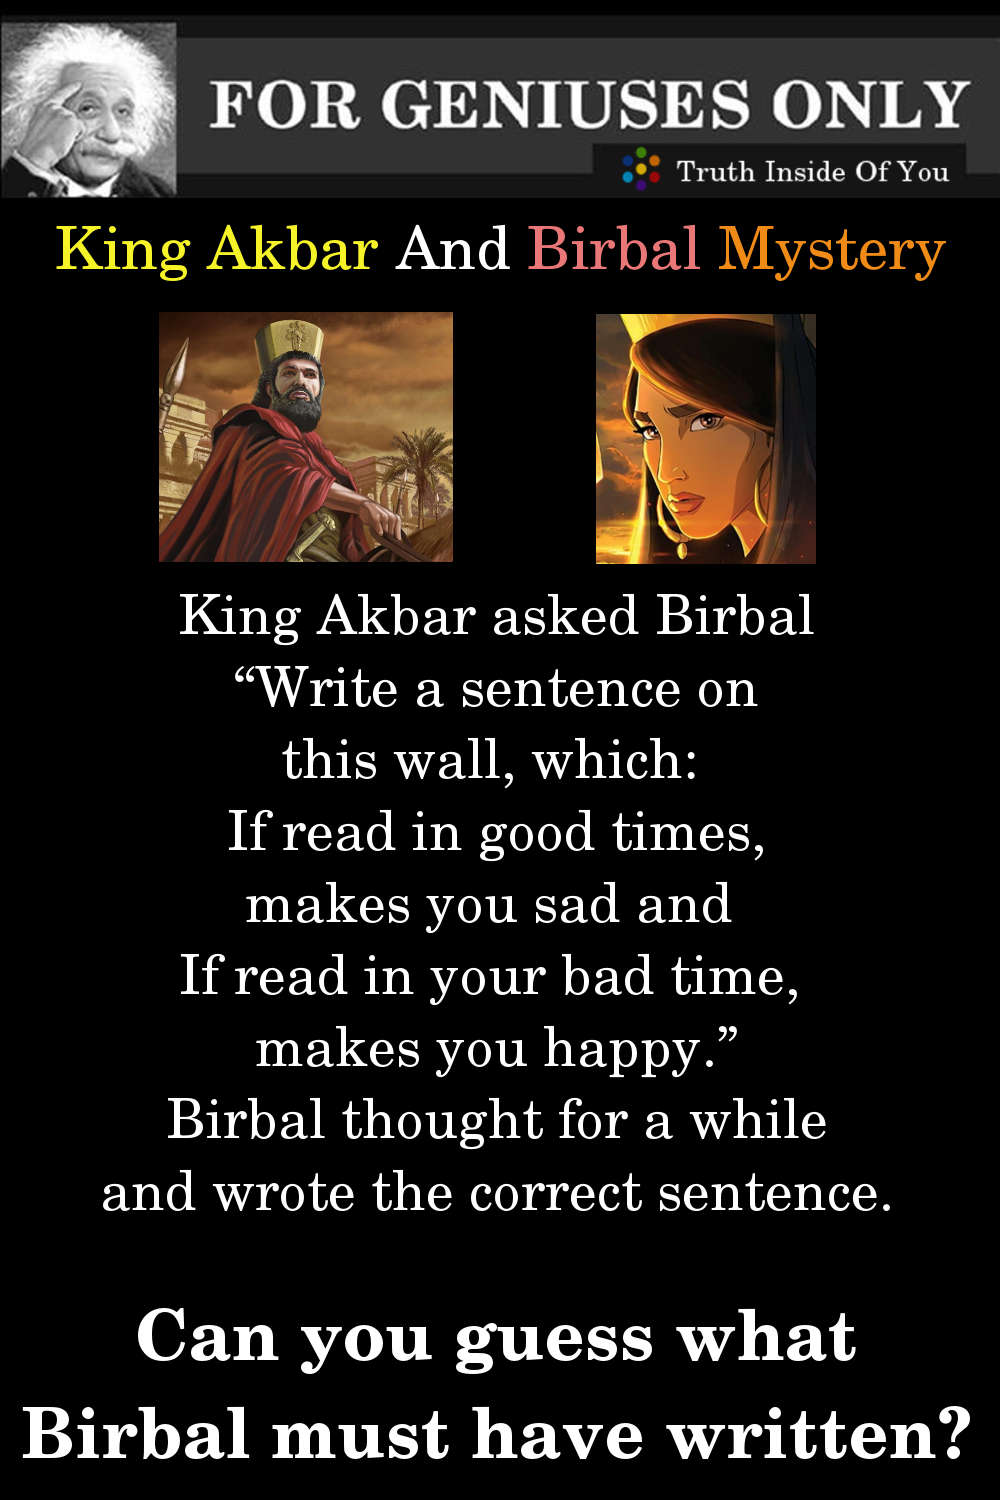 Riddle: King Akbar And Birbal